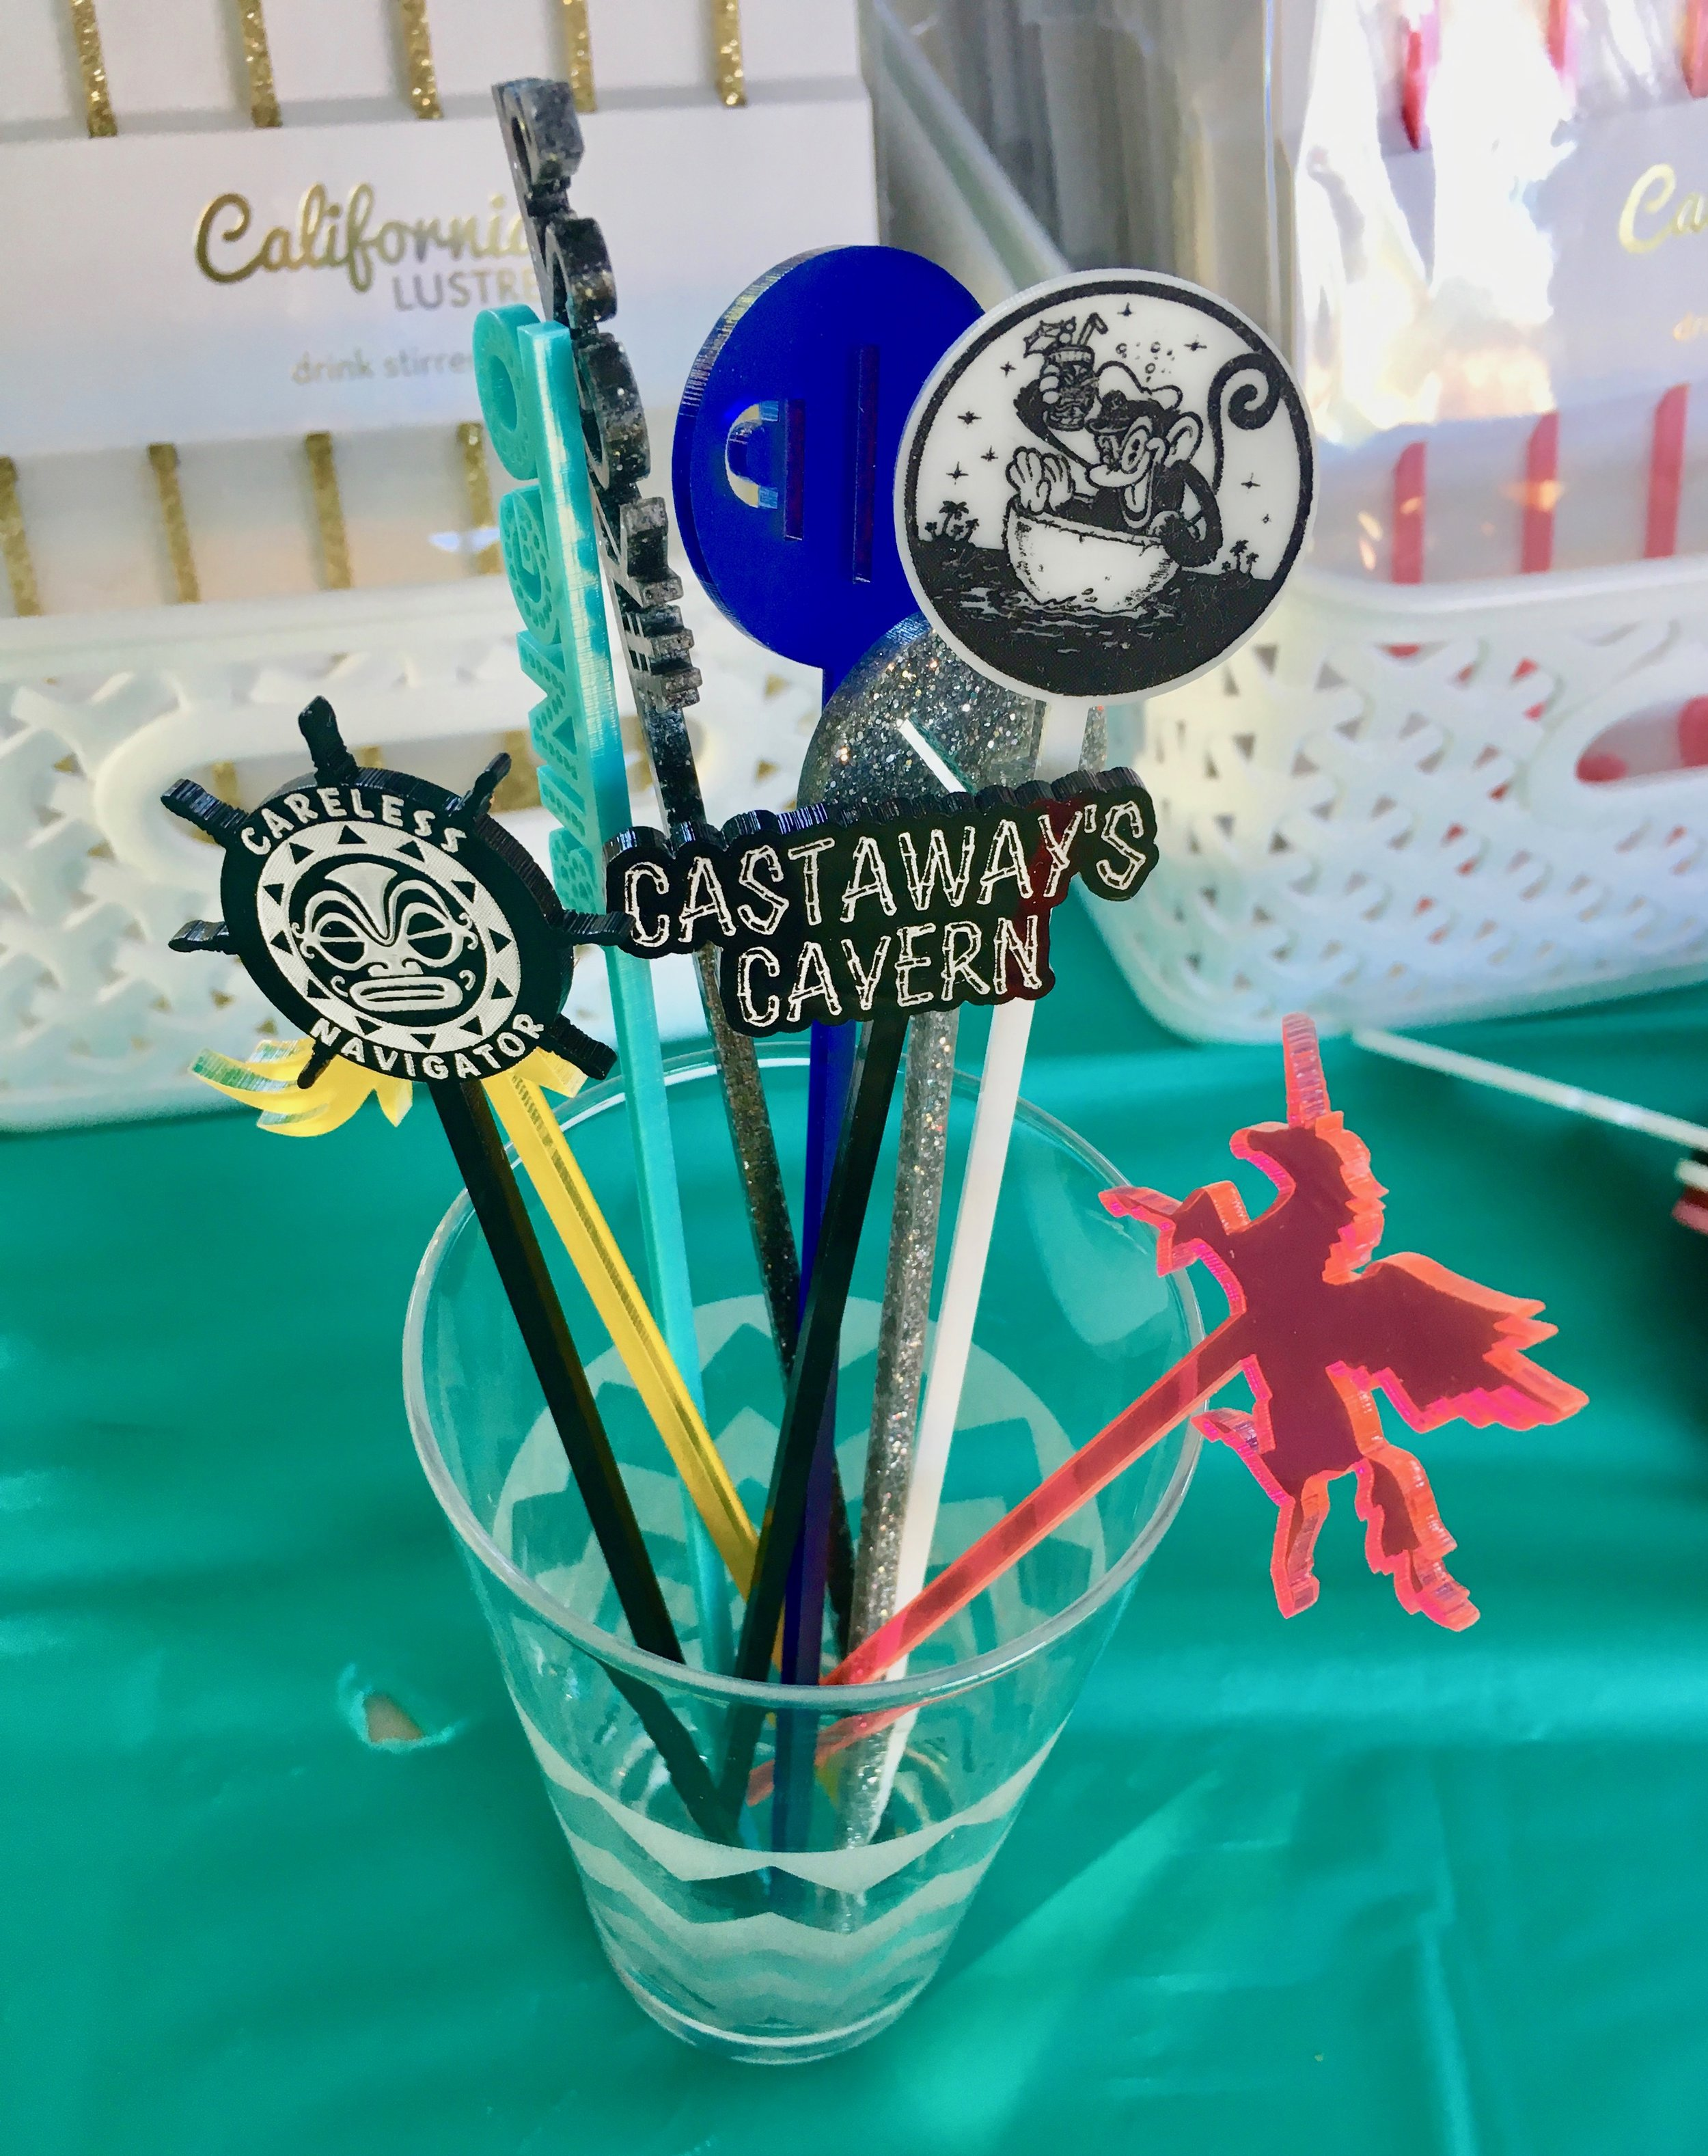 california-lustre-custom-swizzle-sticks.jpg